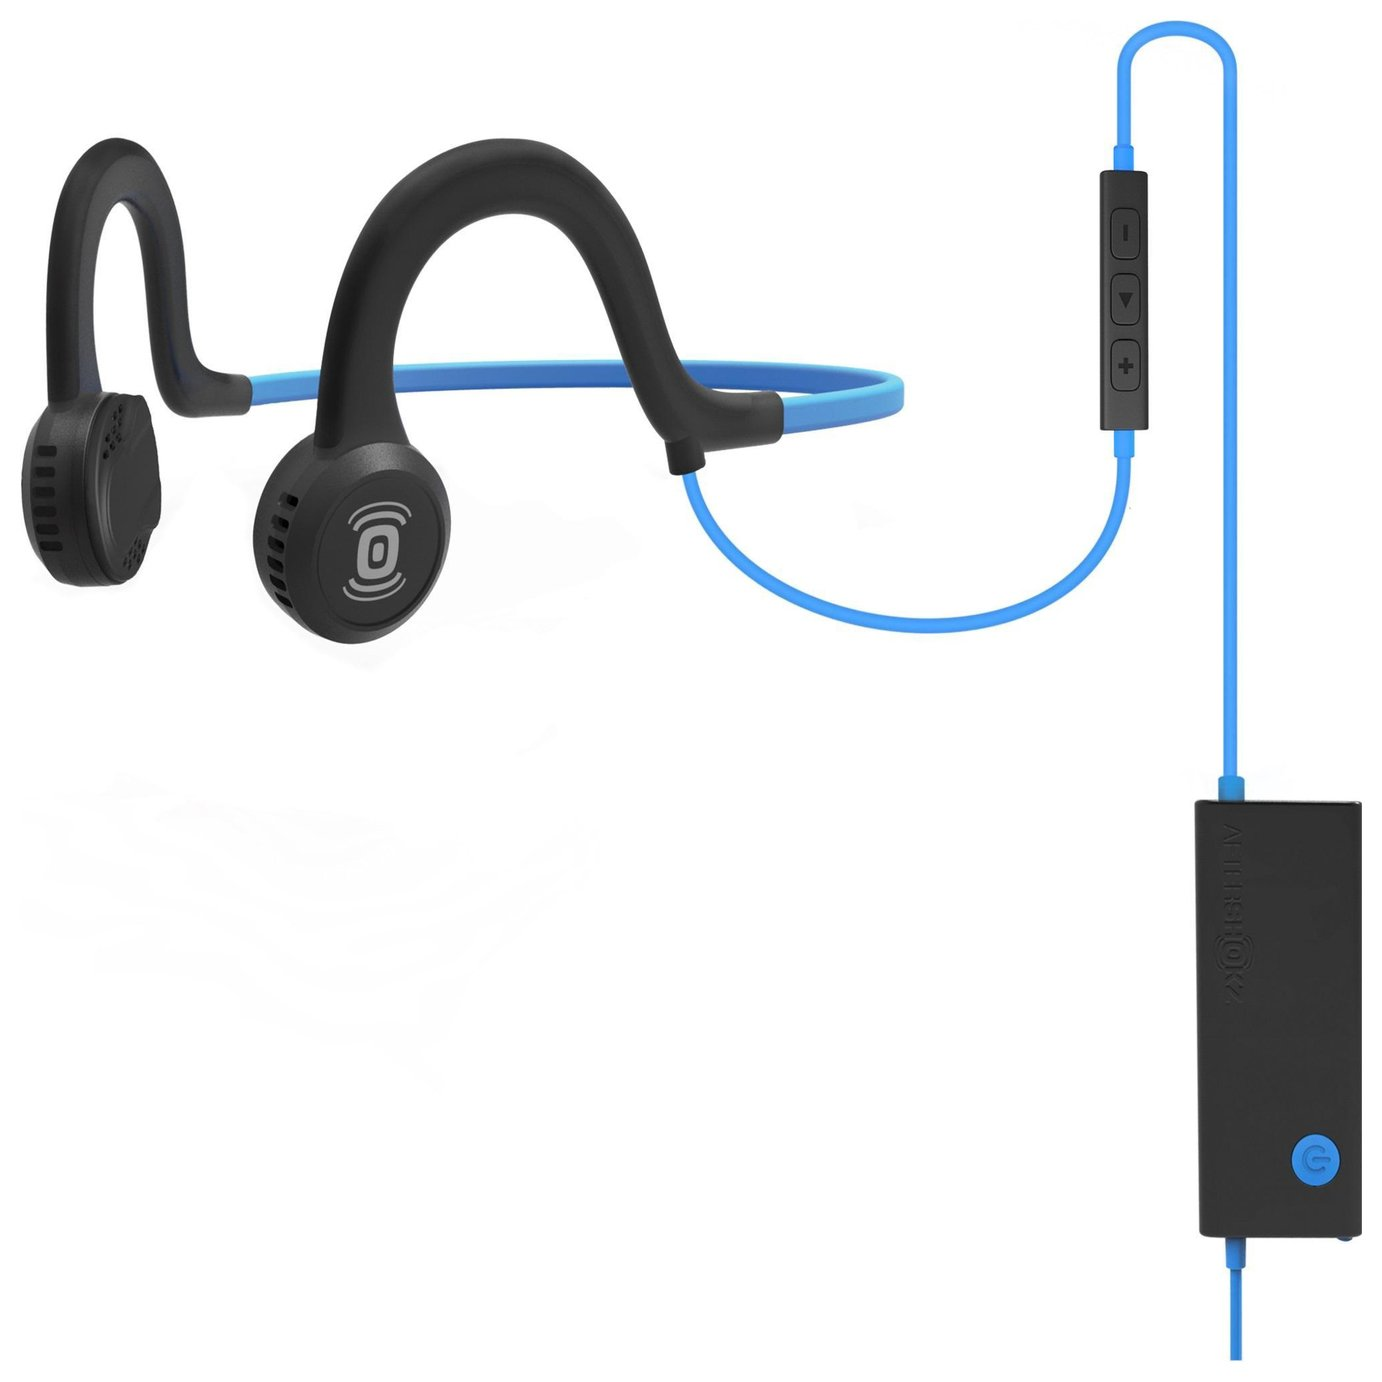 Image of Aftershokz Sportz In-Ear Sports Headphones with Mic - Blue.